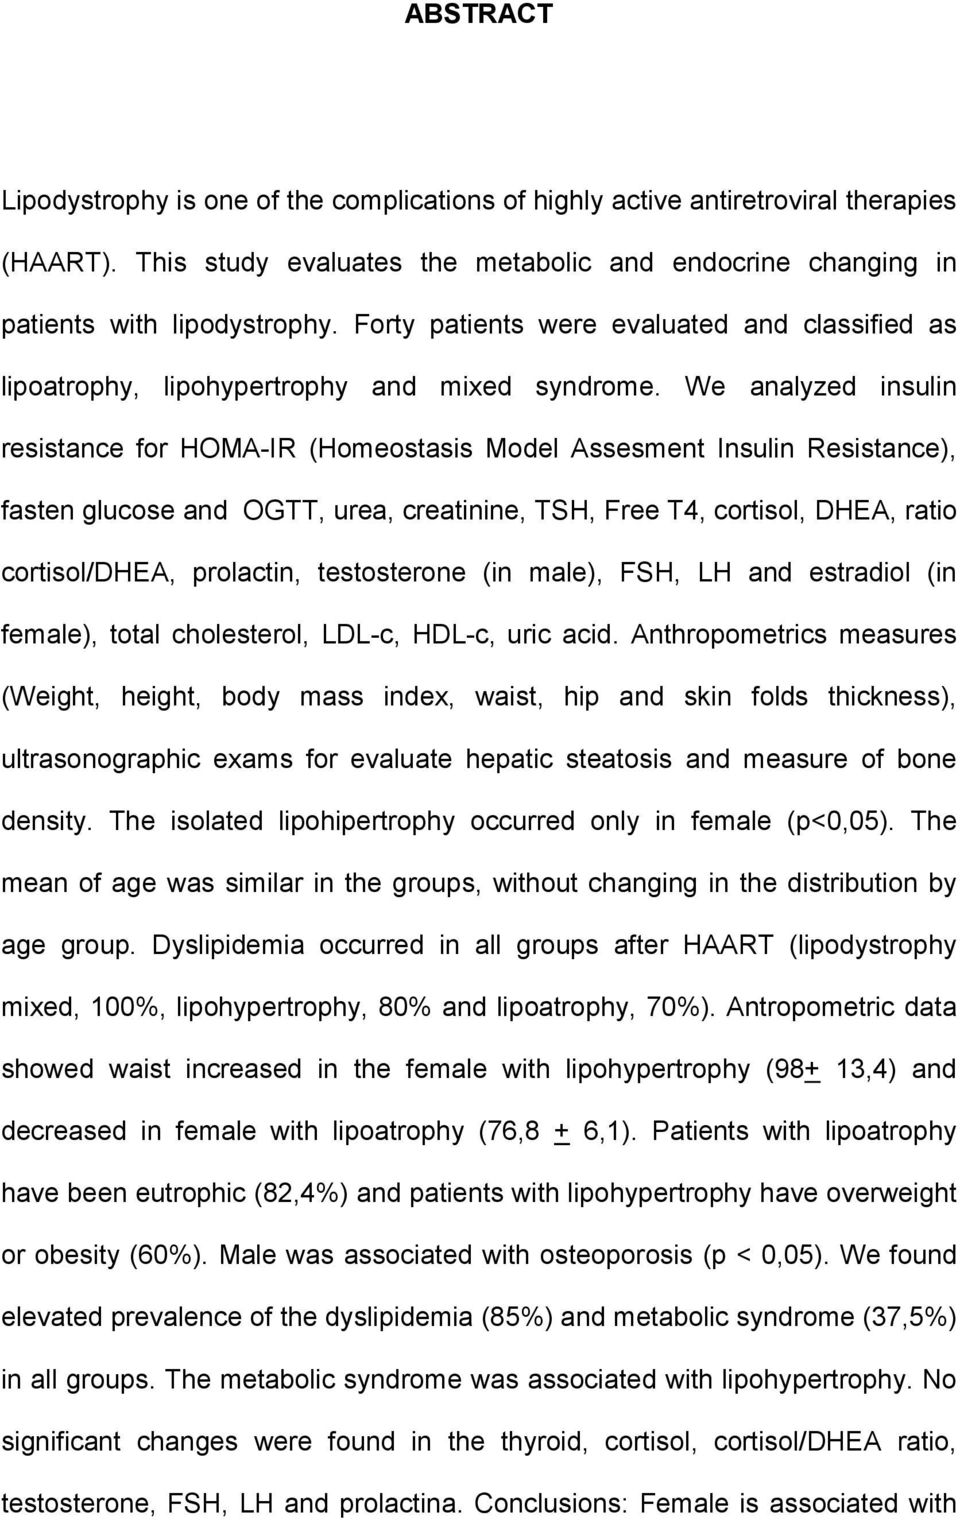 We analyzed insulin resistance for HOMA-IR (Homeostasis Model Assesment Insulin Resistance), fasten glucose and OGTT, urea, creatinine, TSH, Free T4, cortisol, DHEA, ratio cortisol/dhea, prolactin,